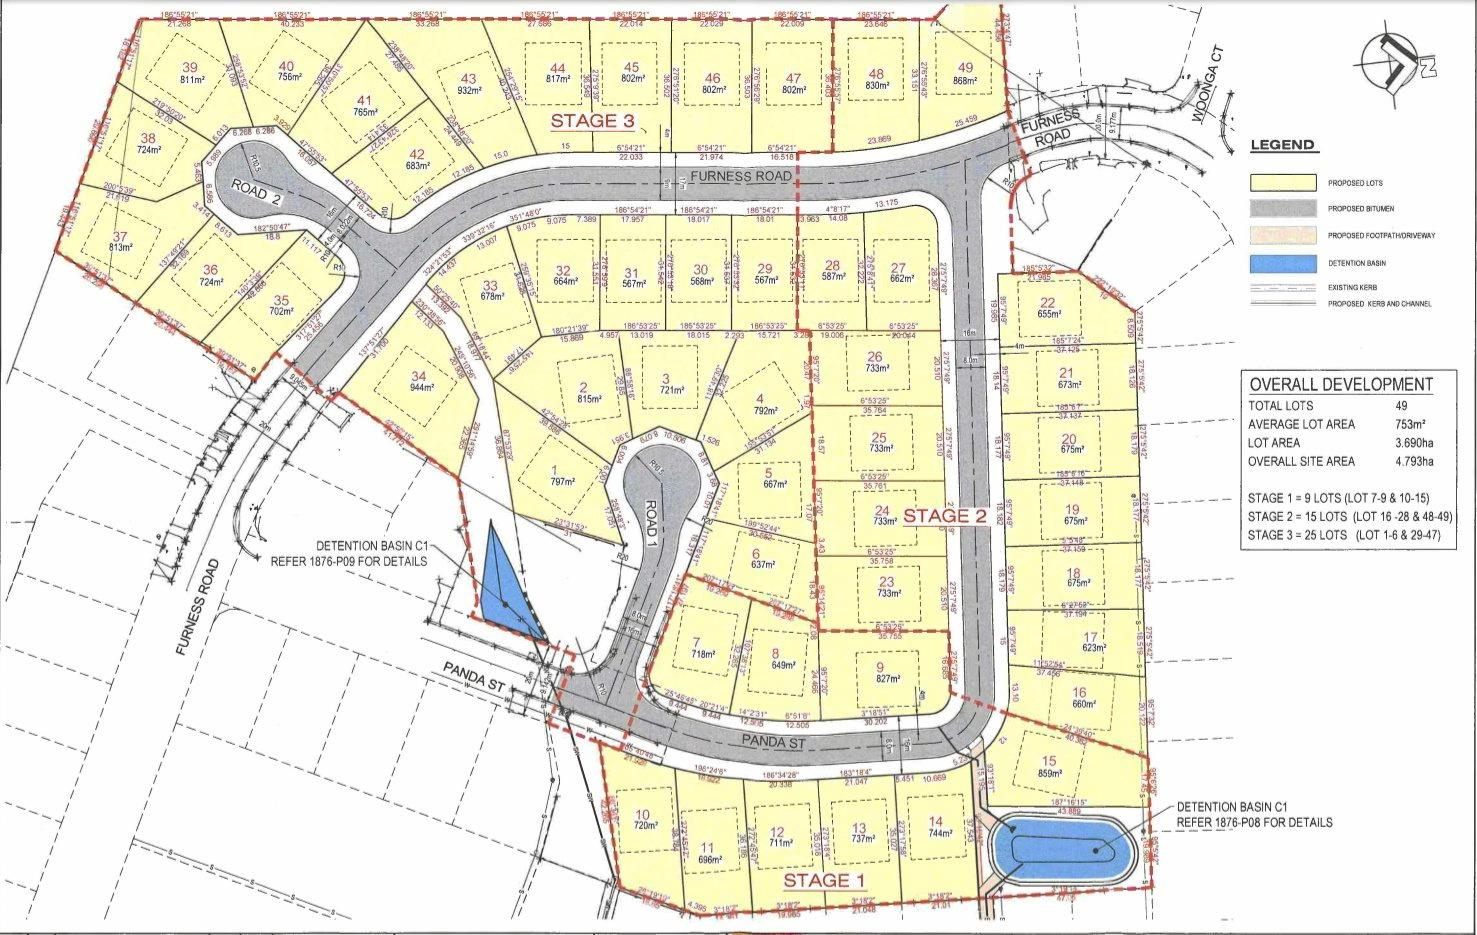 A 49-lot subdivision has been proposed at Southside.